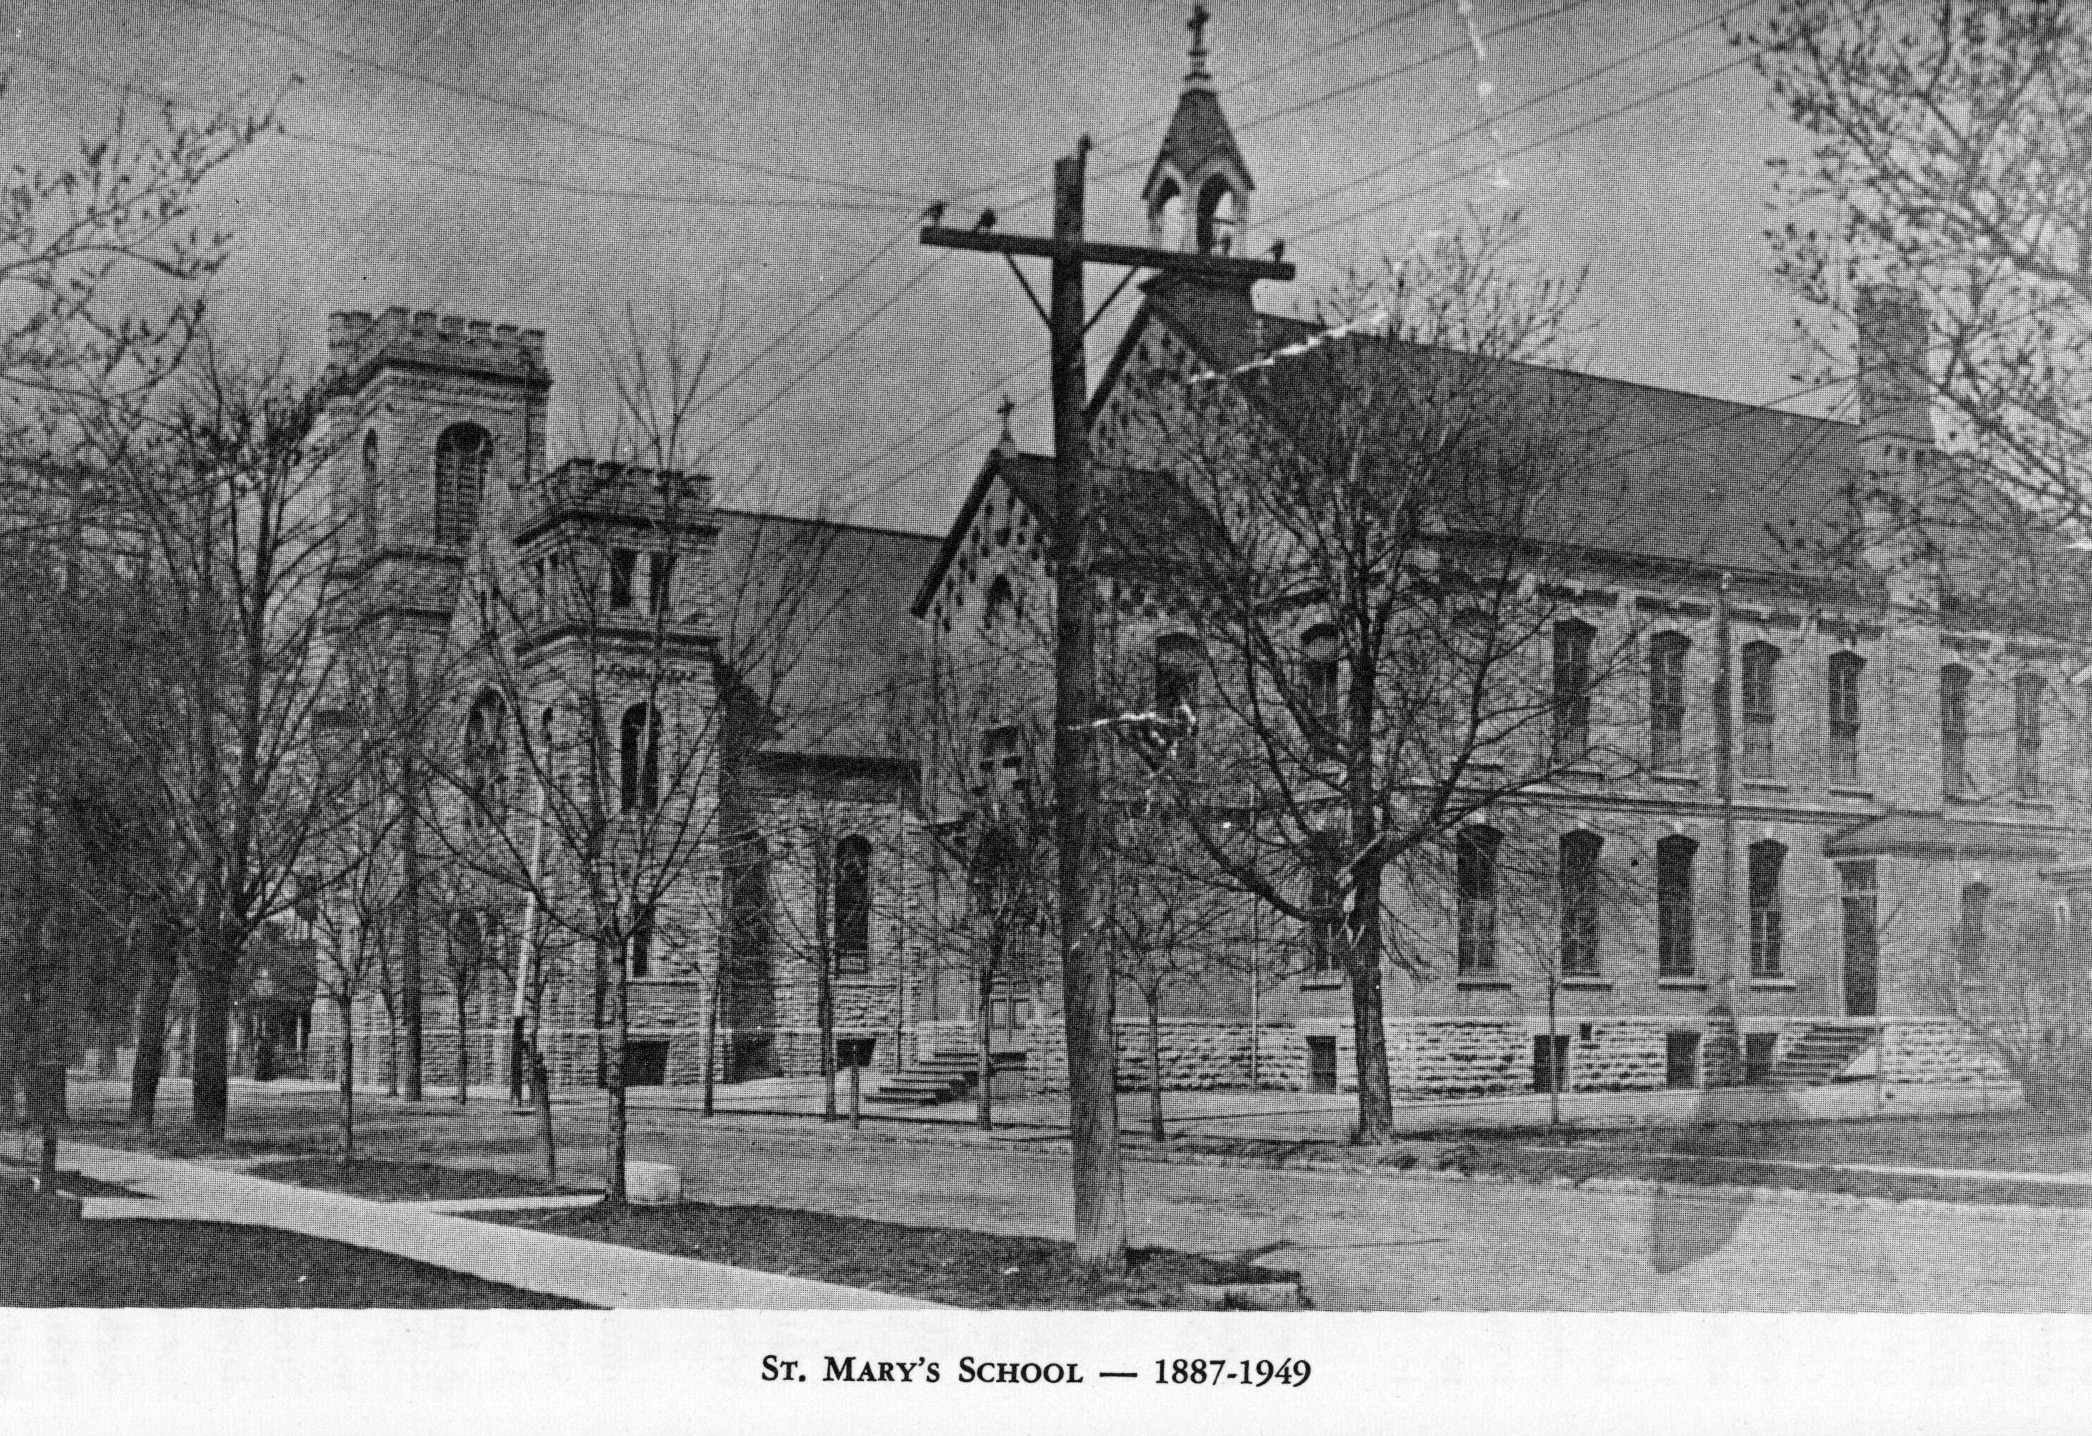 St. Mary's School, 1887-1949.